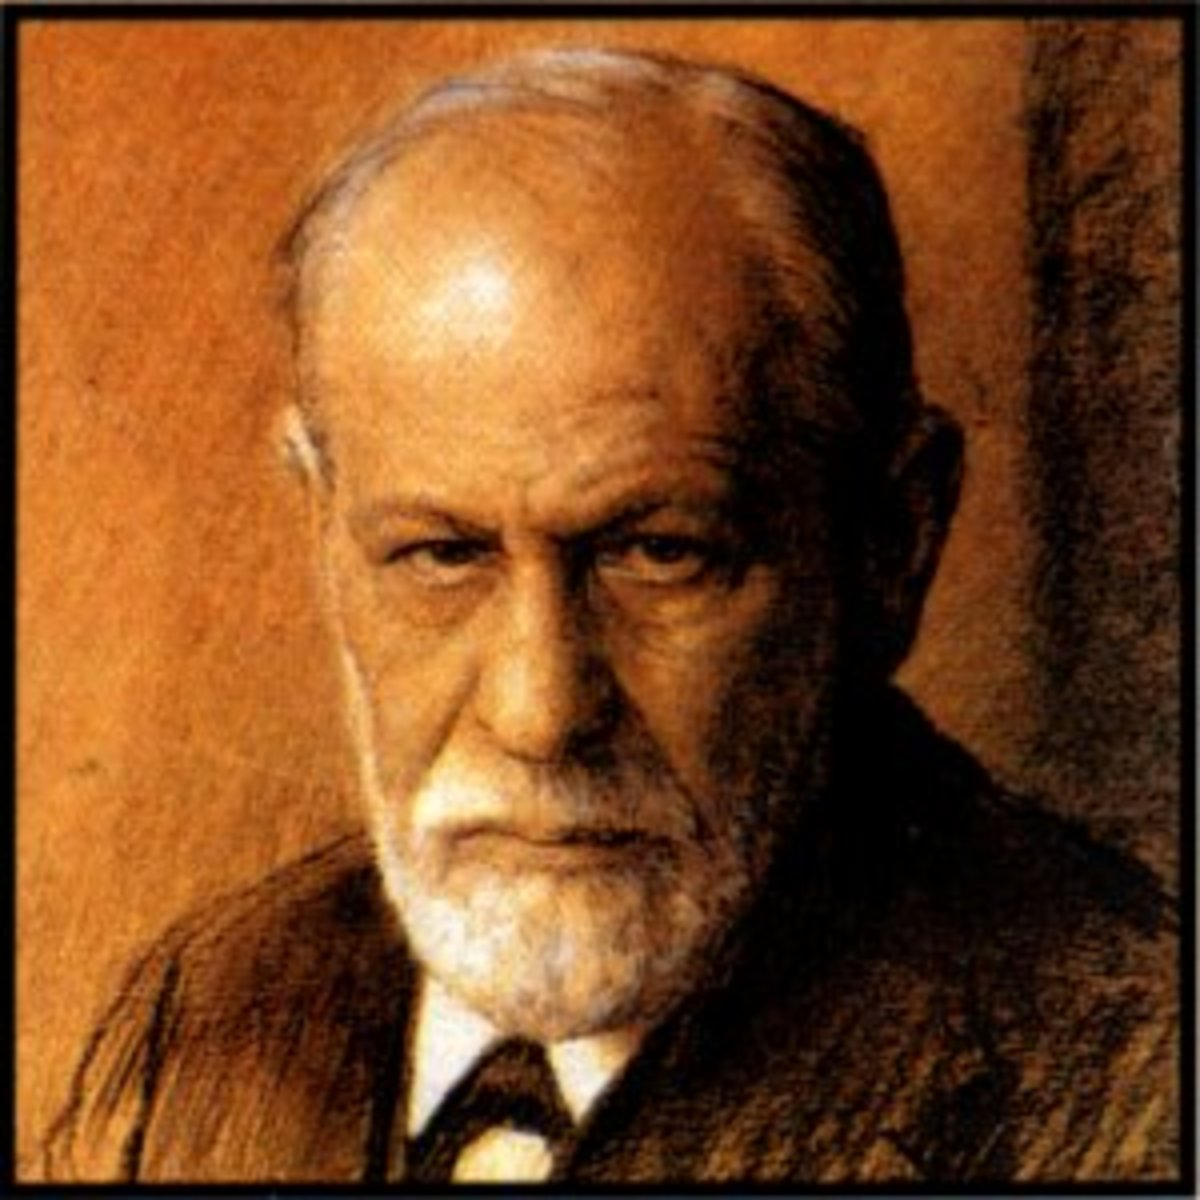 Probably no single individual has had a more profound effect on twentieth-century thought than Sigmund Freud. His works have influenced psychiatry, anthropology, social work, penology, and education.